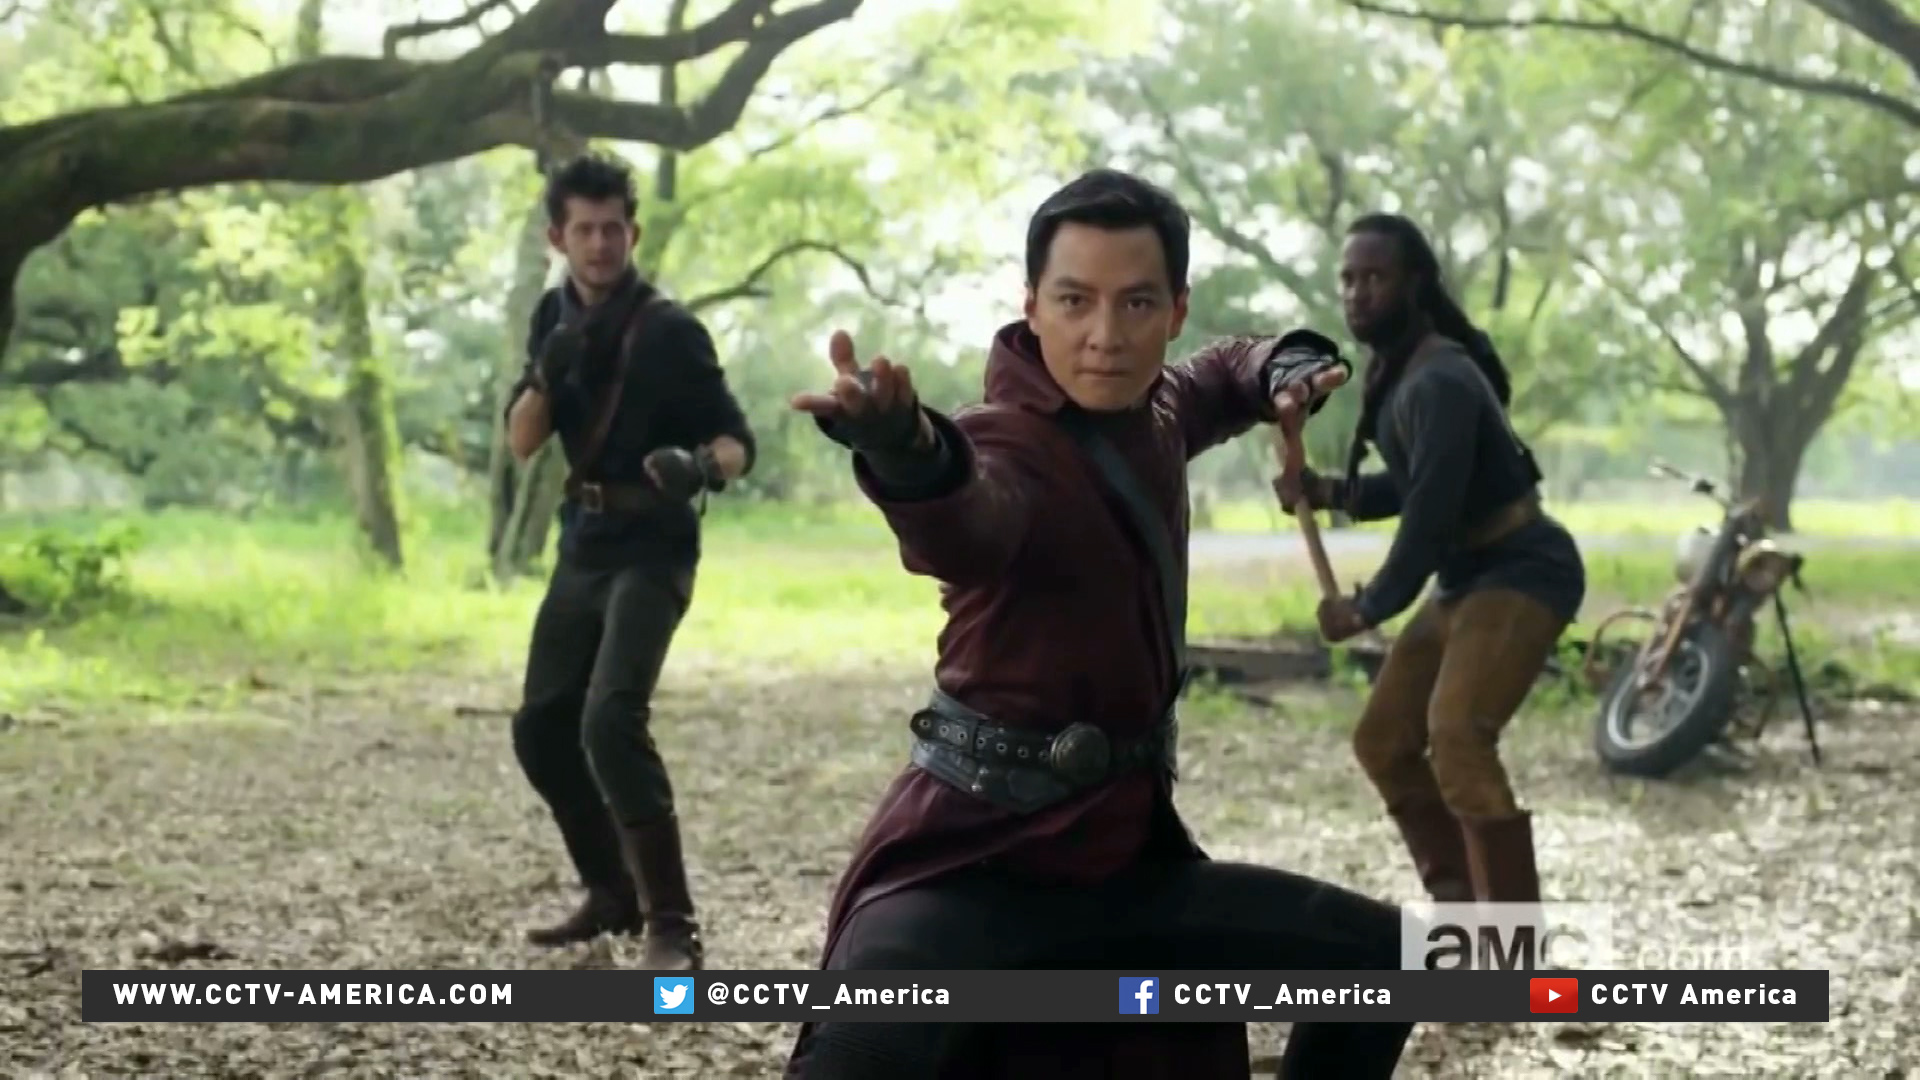 Into the Badlands producer, star Daniel Wu breaks barriers for Asian actors